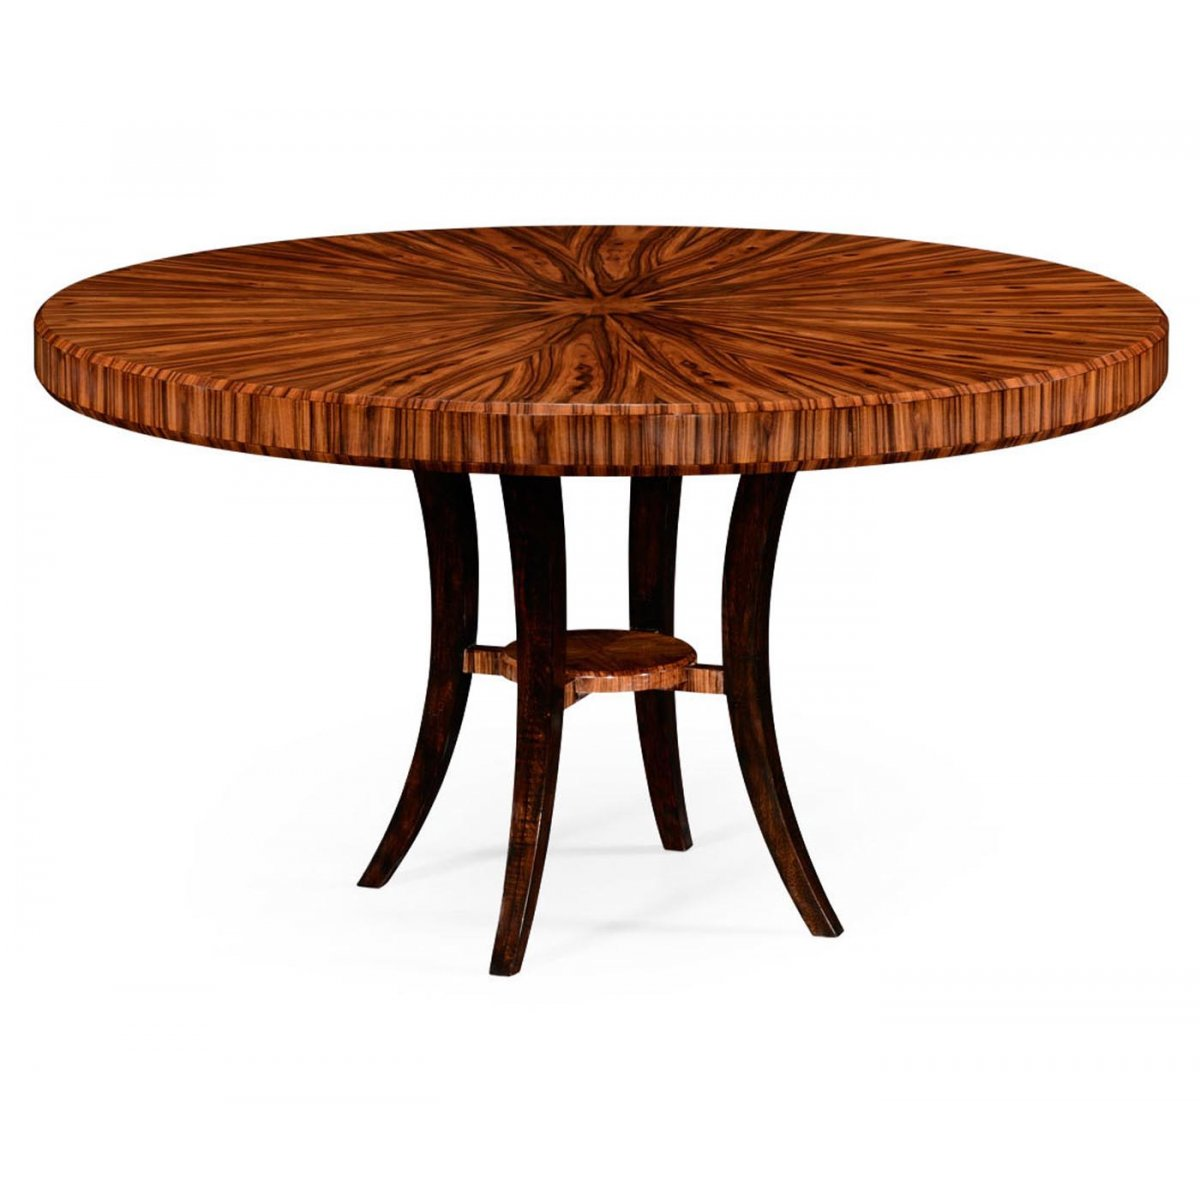 Round Dinner Table For 6: 6 Seater Art Deco Round Dining Table 54''